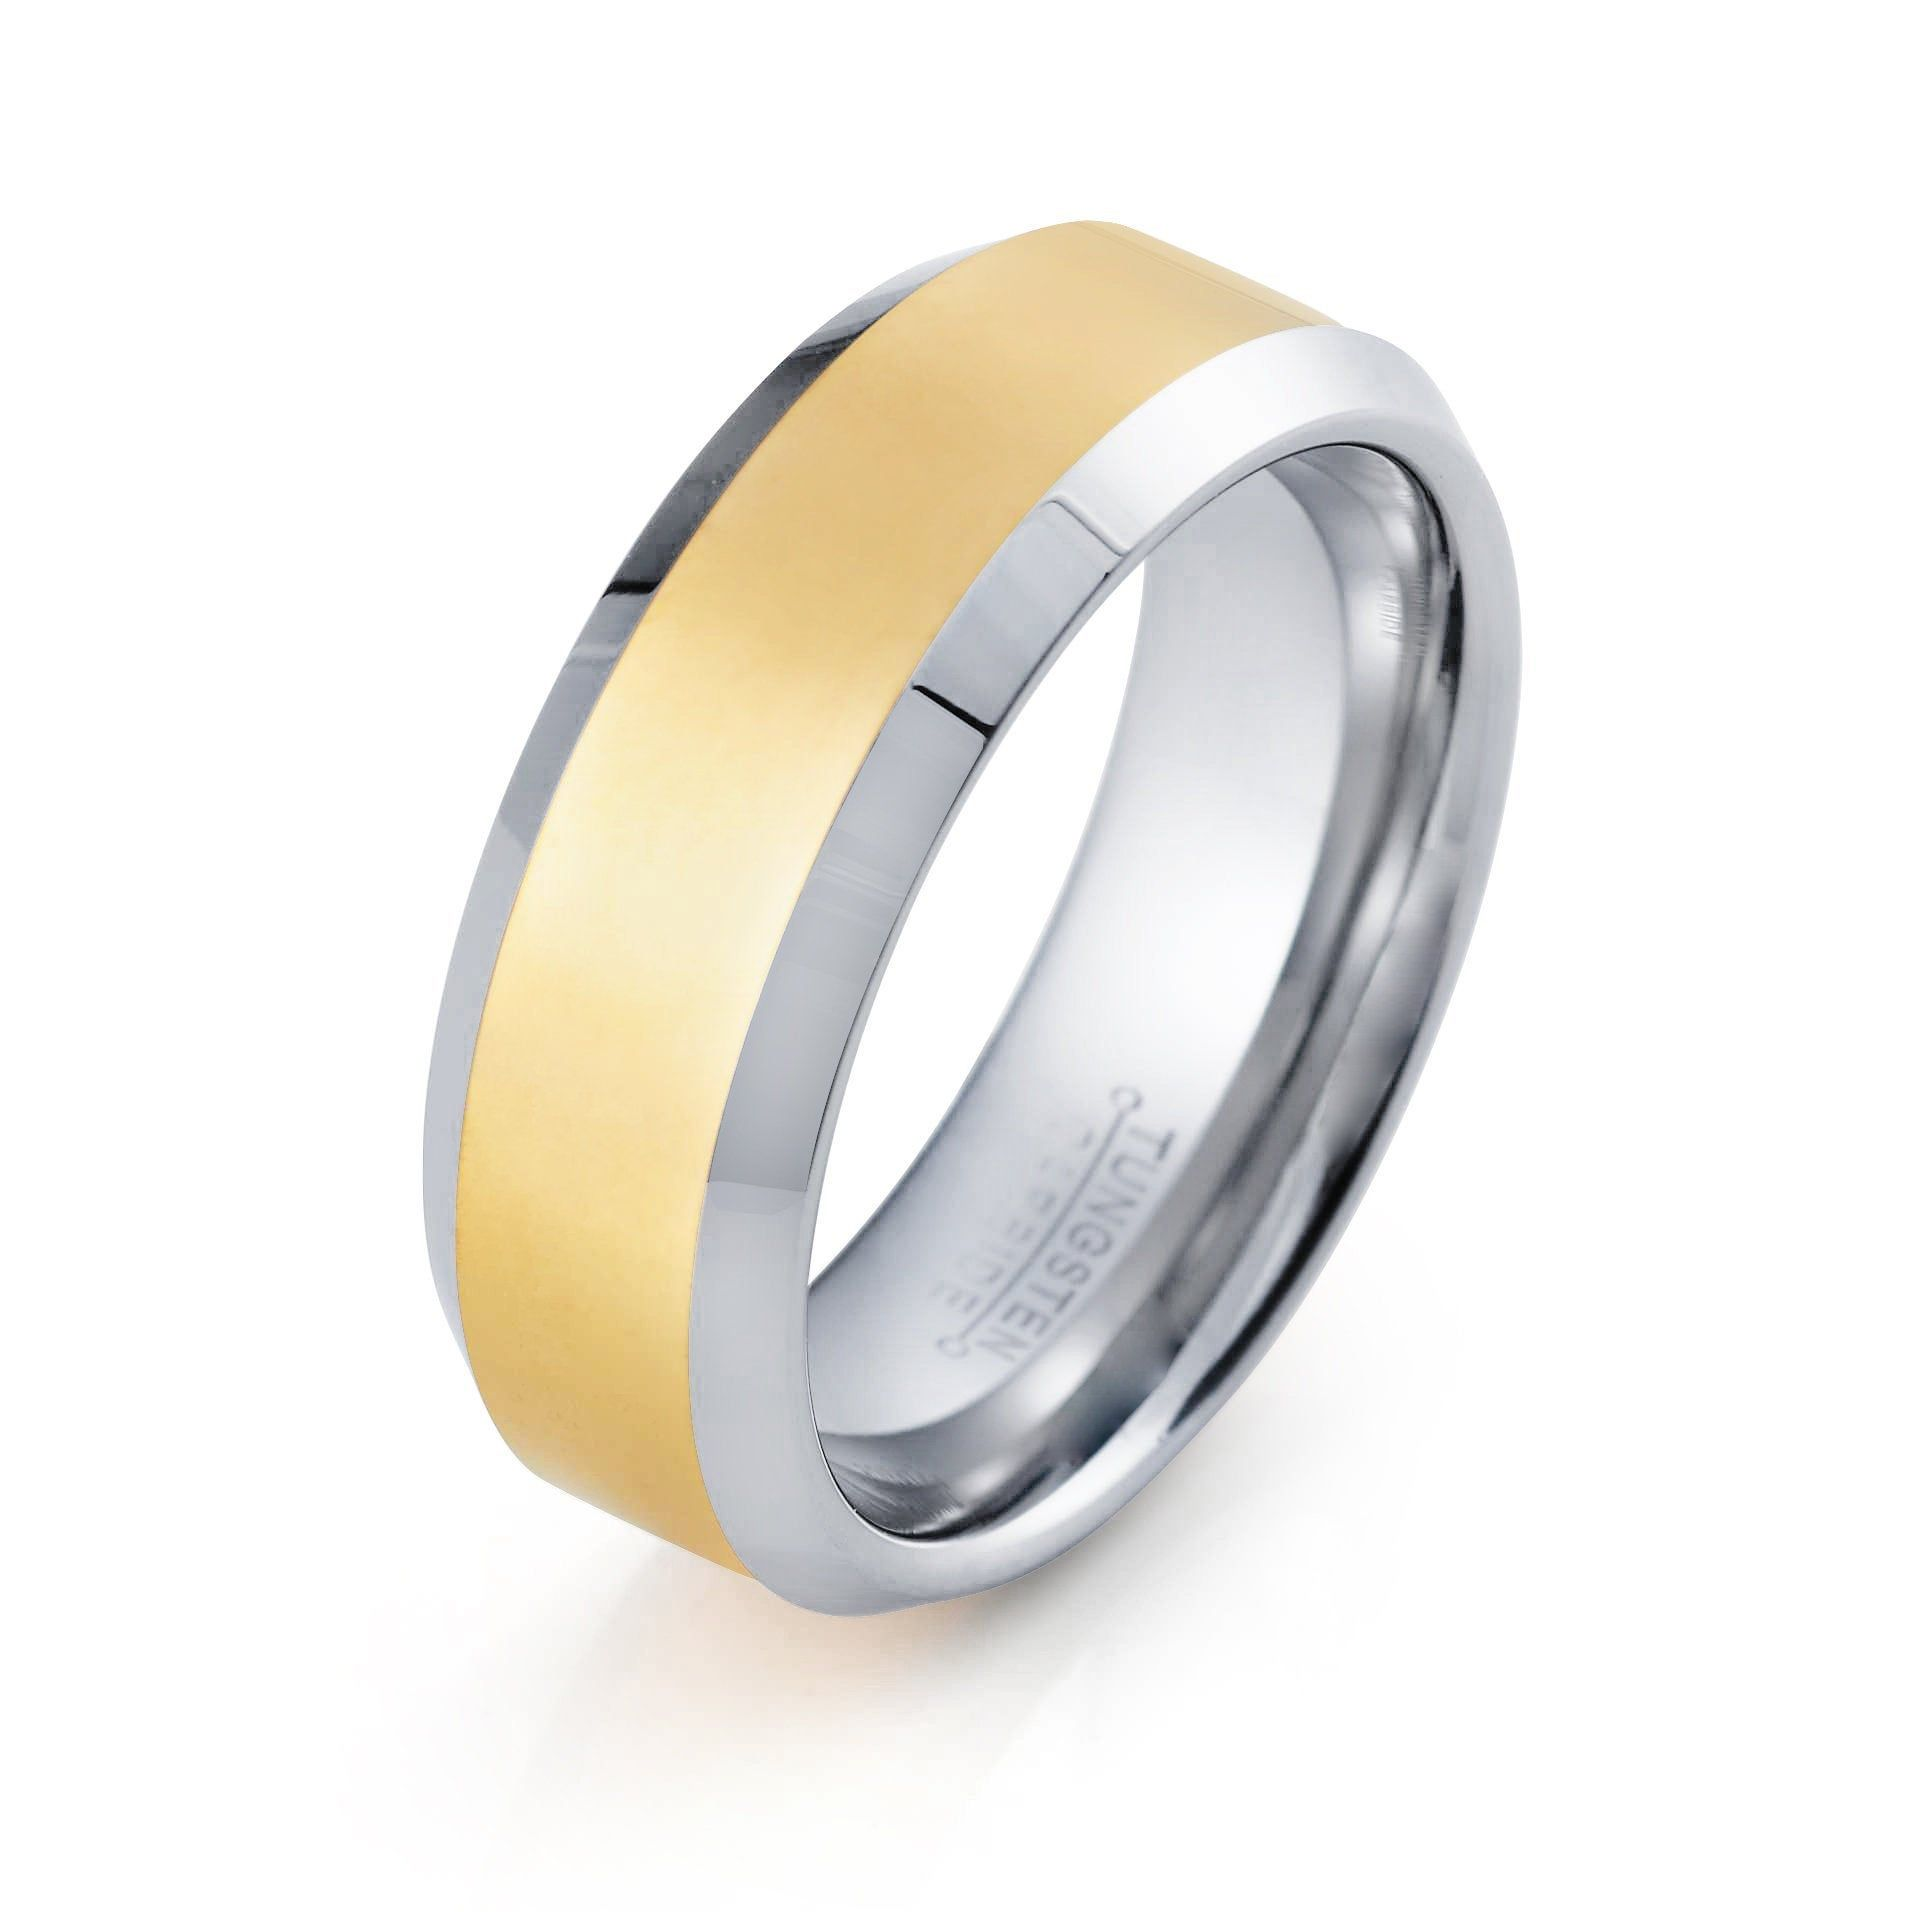 Mens Wedding Band Tungsten Ring 8mm Yellow Gold Ring Silver And Yellow Ring Engagement An Gold Tungsten Ring Yellow Gold Wedding Band Tungsten Engagement Rings